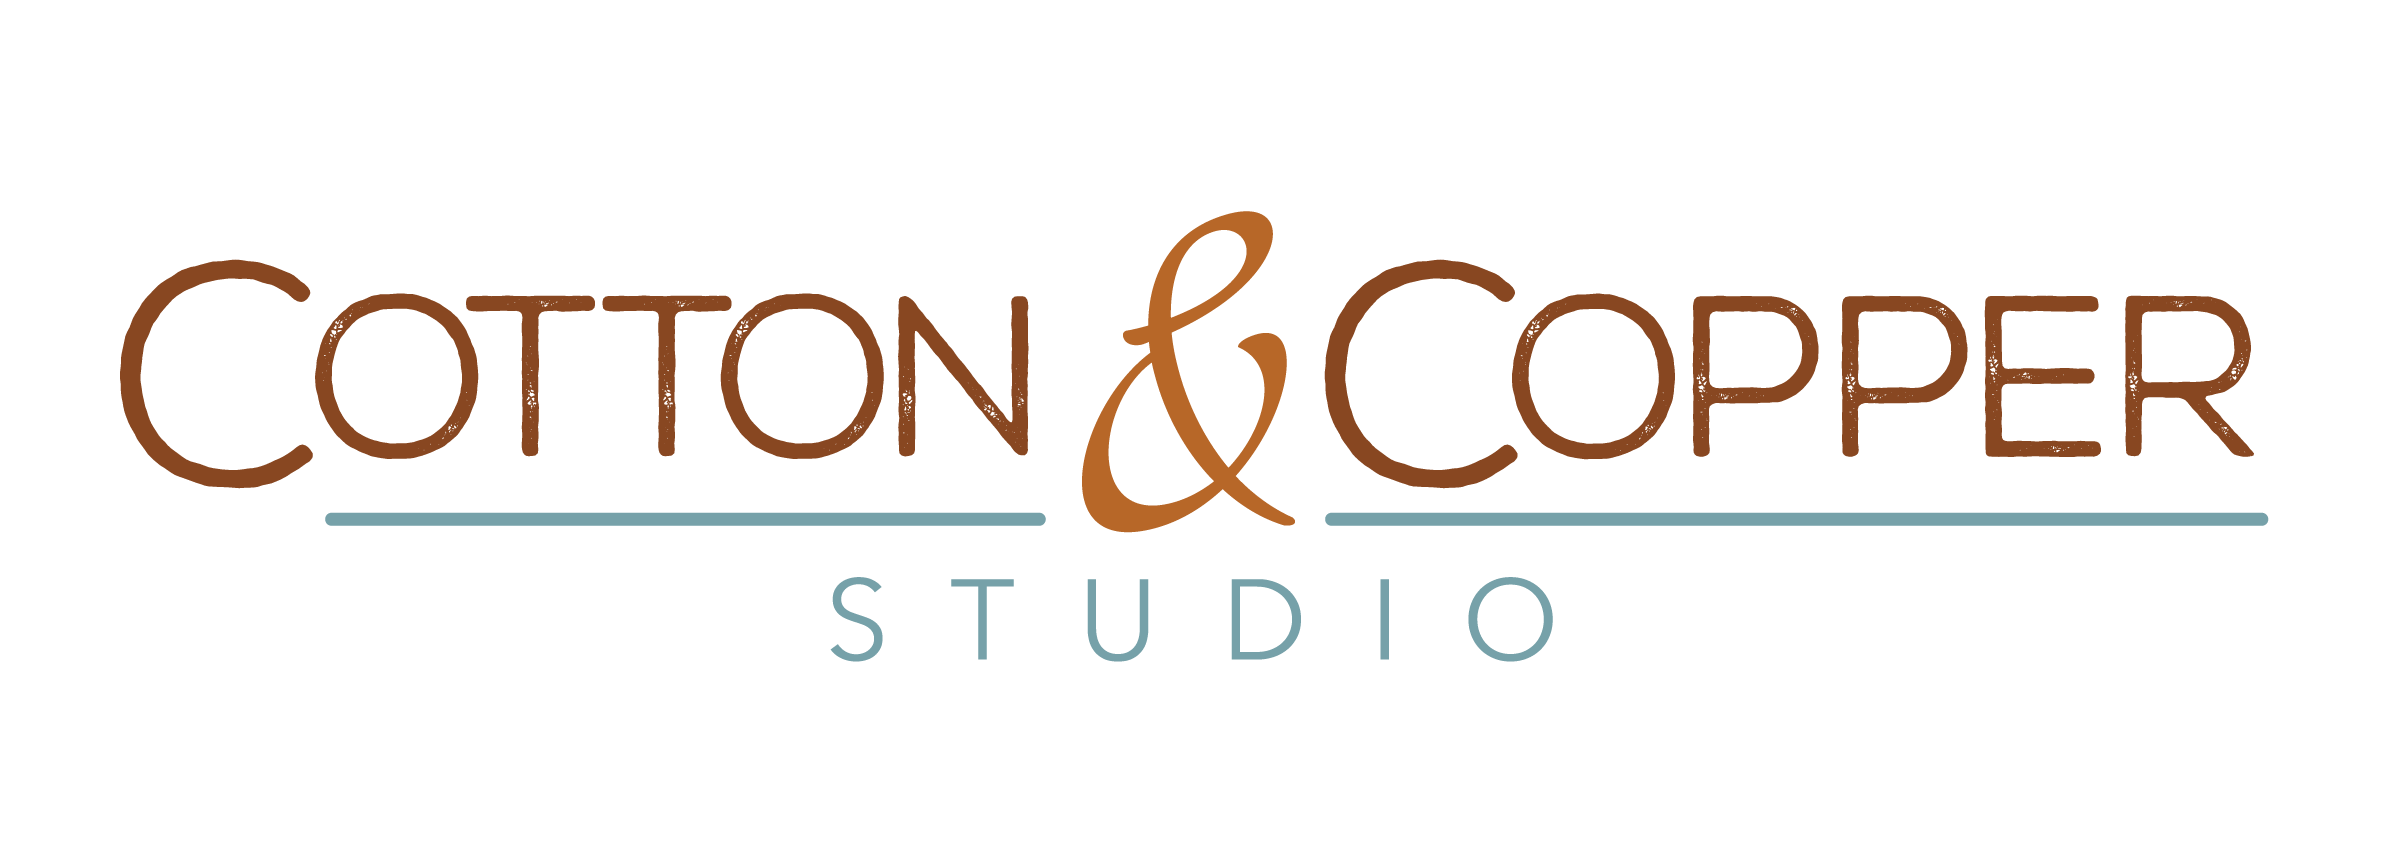 Cotton & Copper Studio LLC